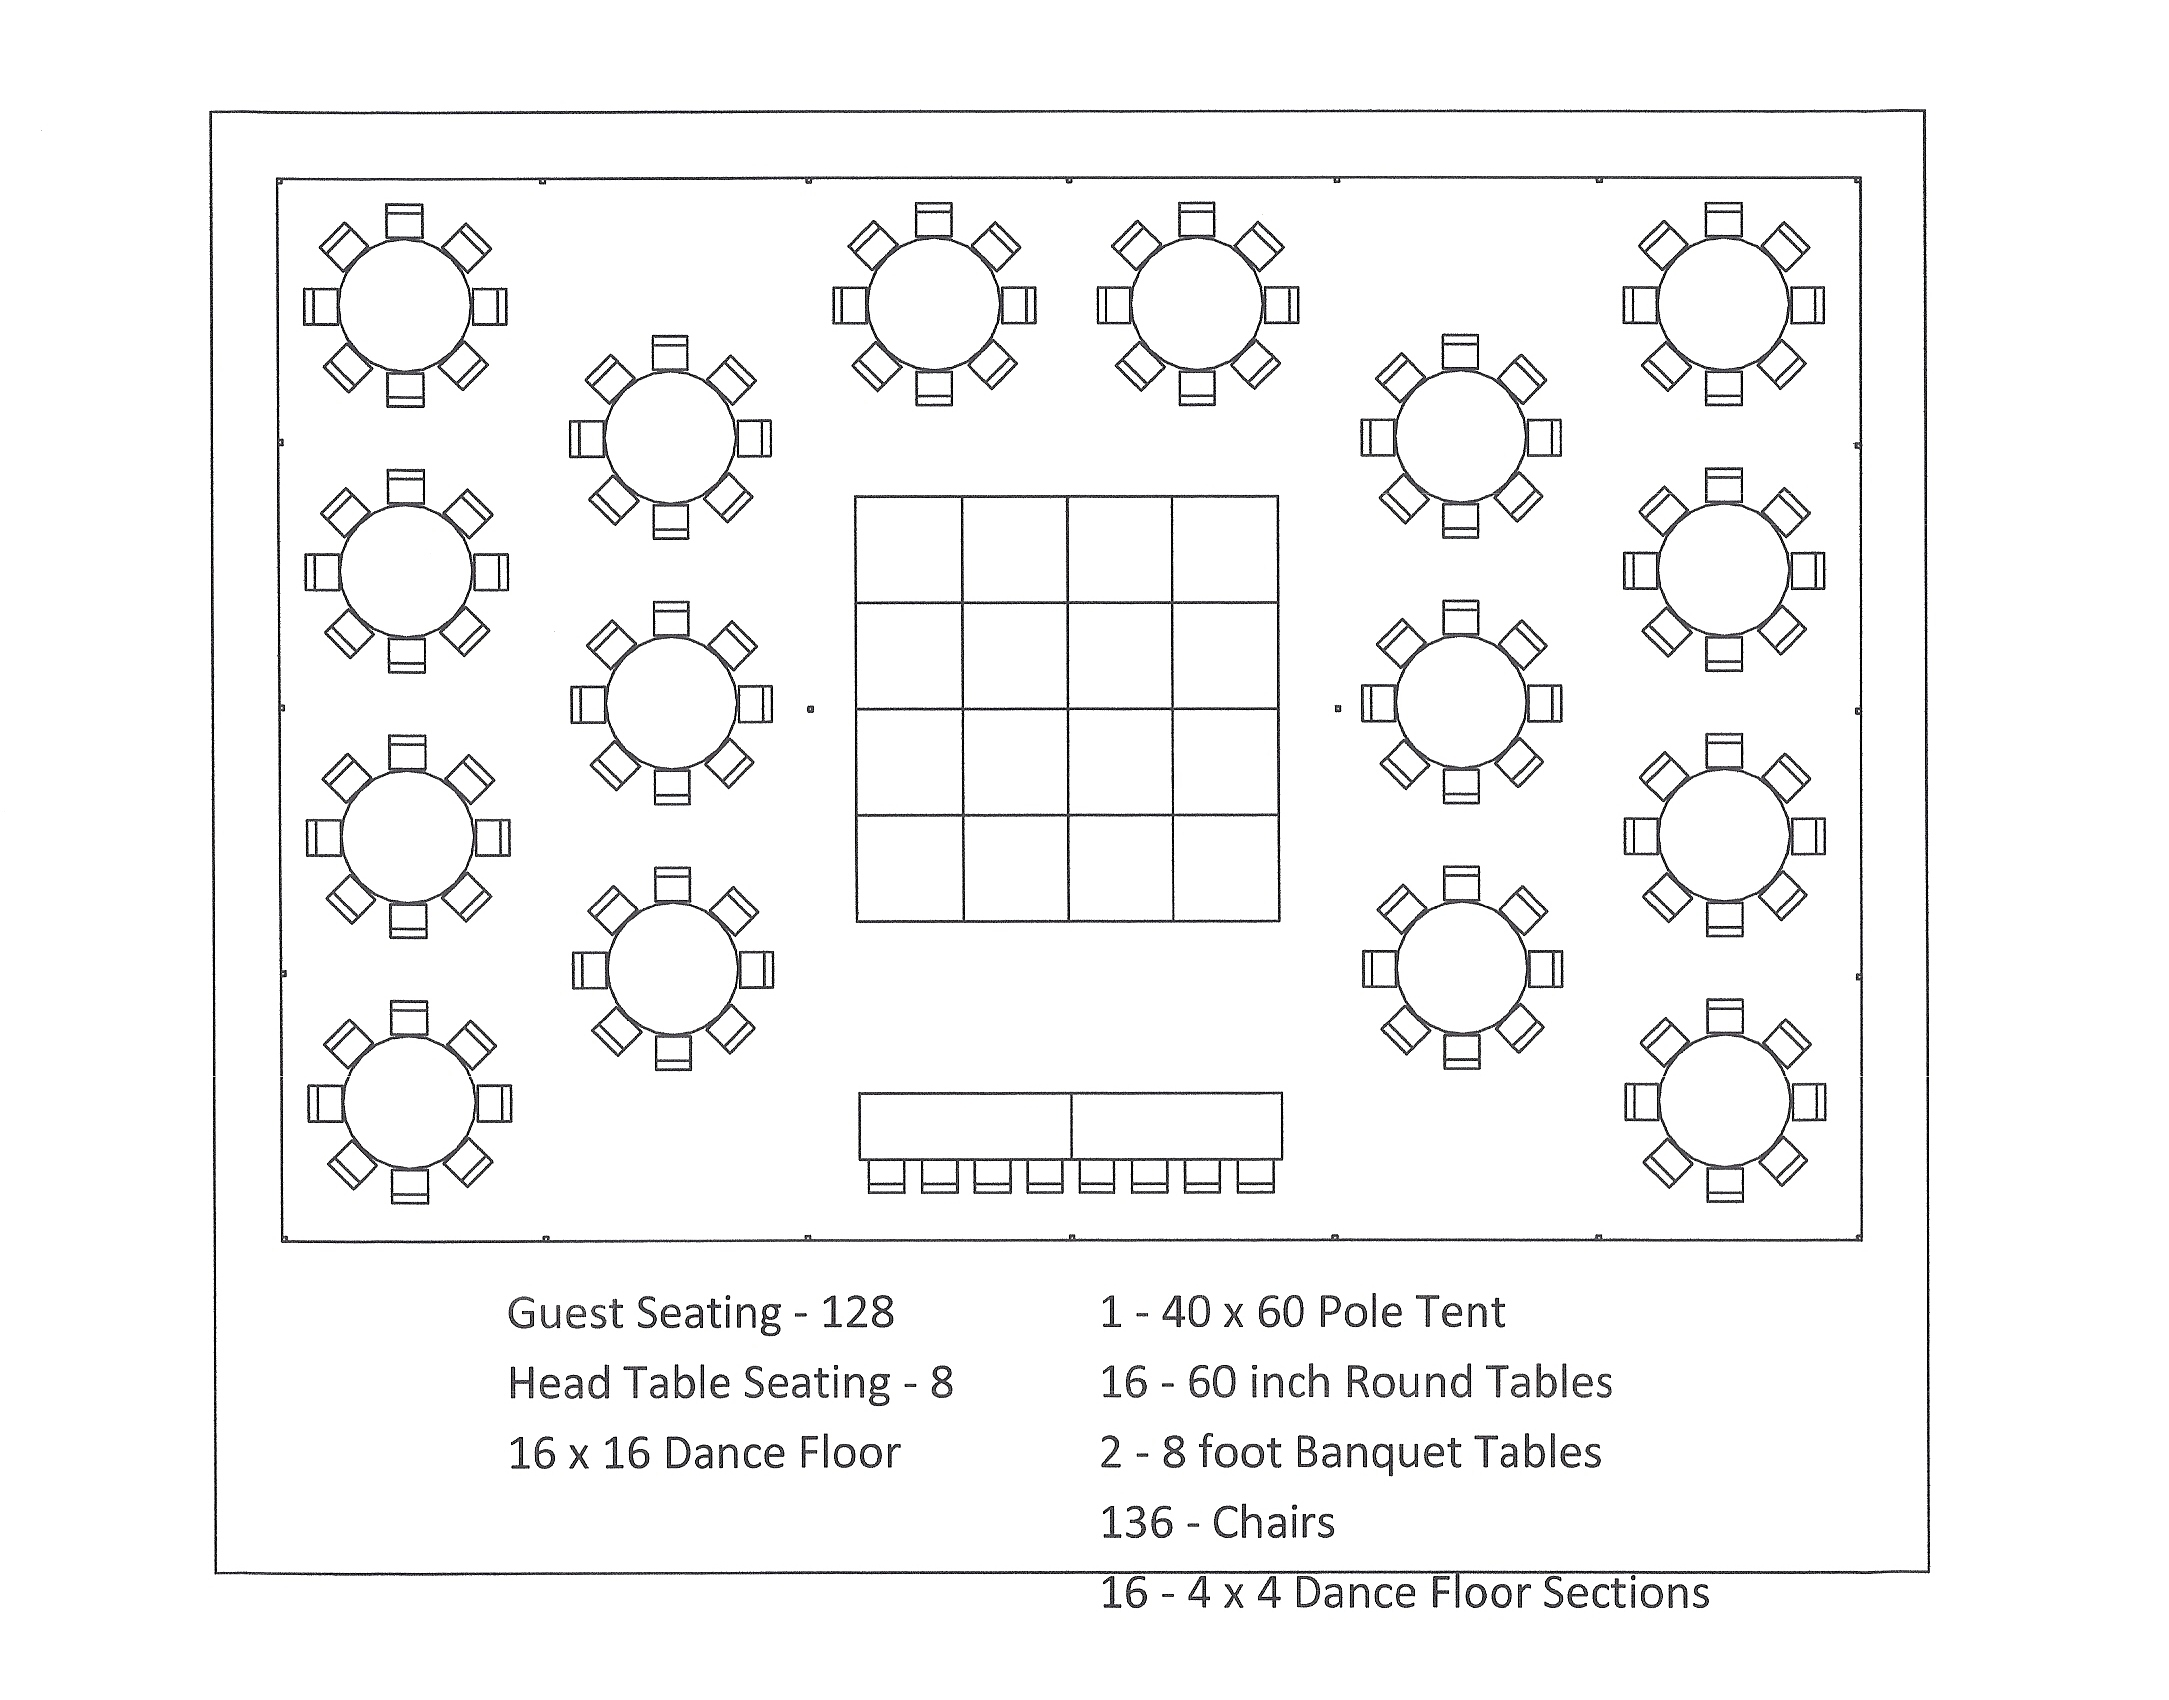 Indian Wedding X Table 2 Seating Chart Plan Arrangement Reception Therapyboxfo Head